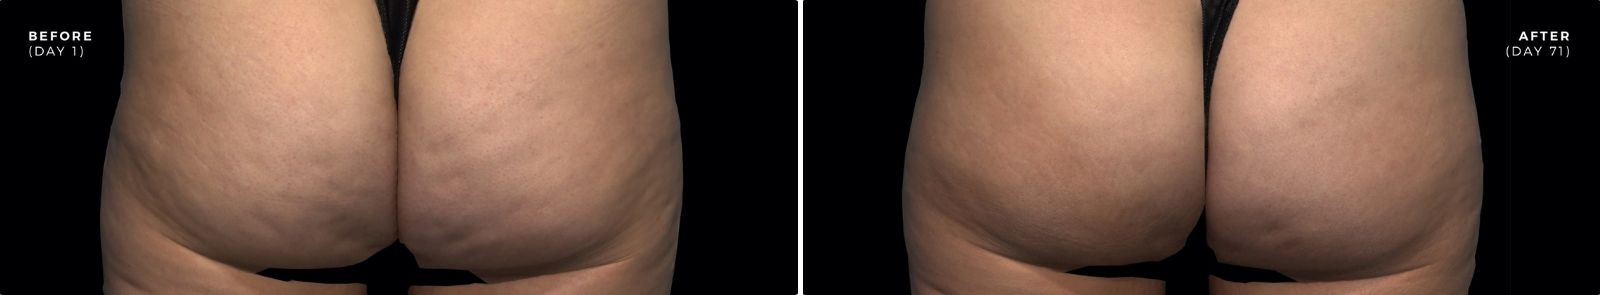 QWO cellulite treatment before and after image in Totowa, NJ